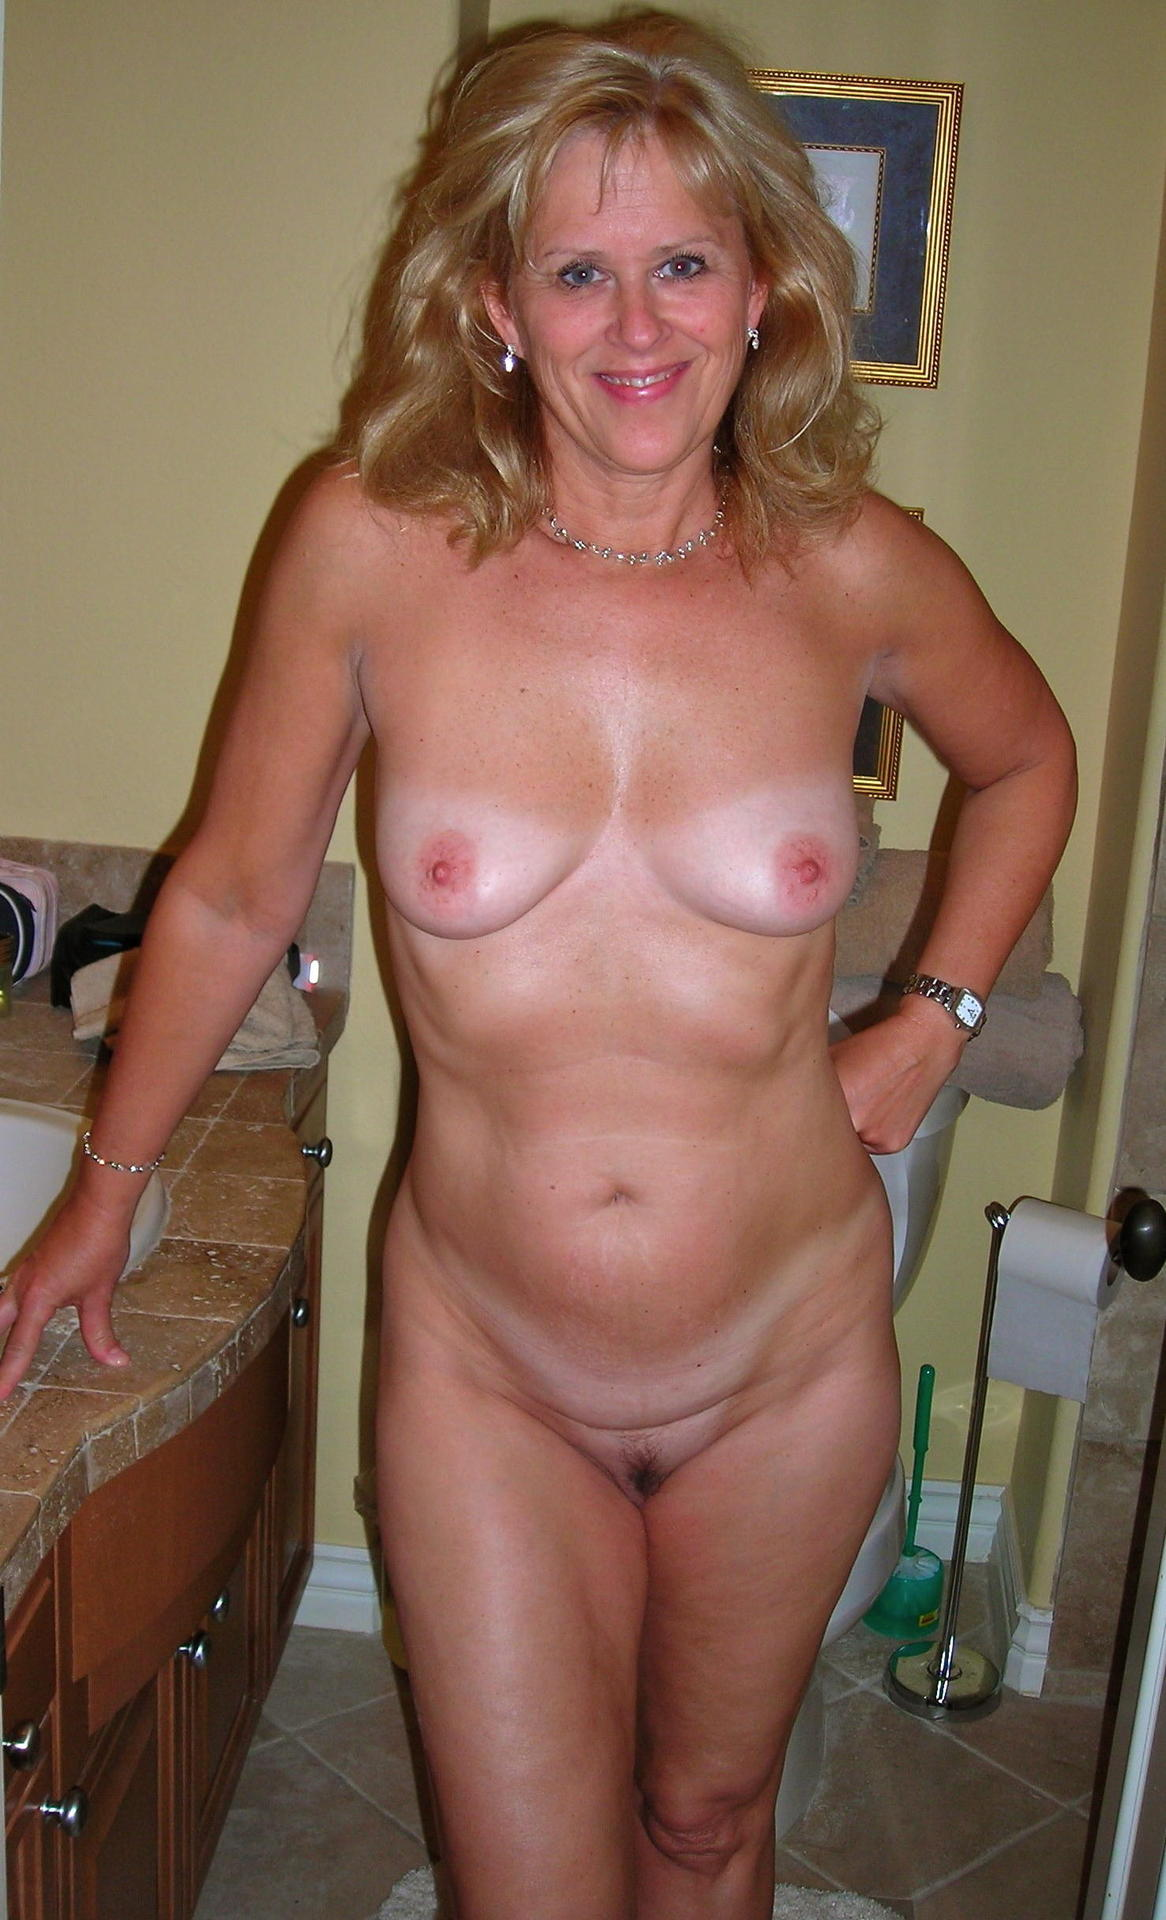 nice woman nacked body